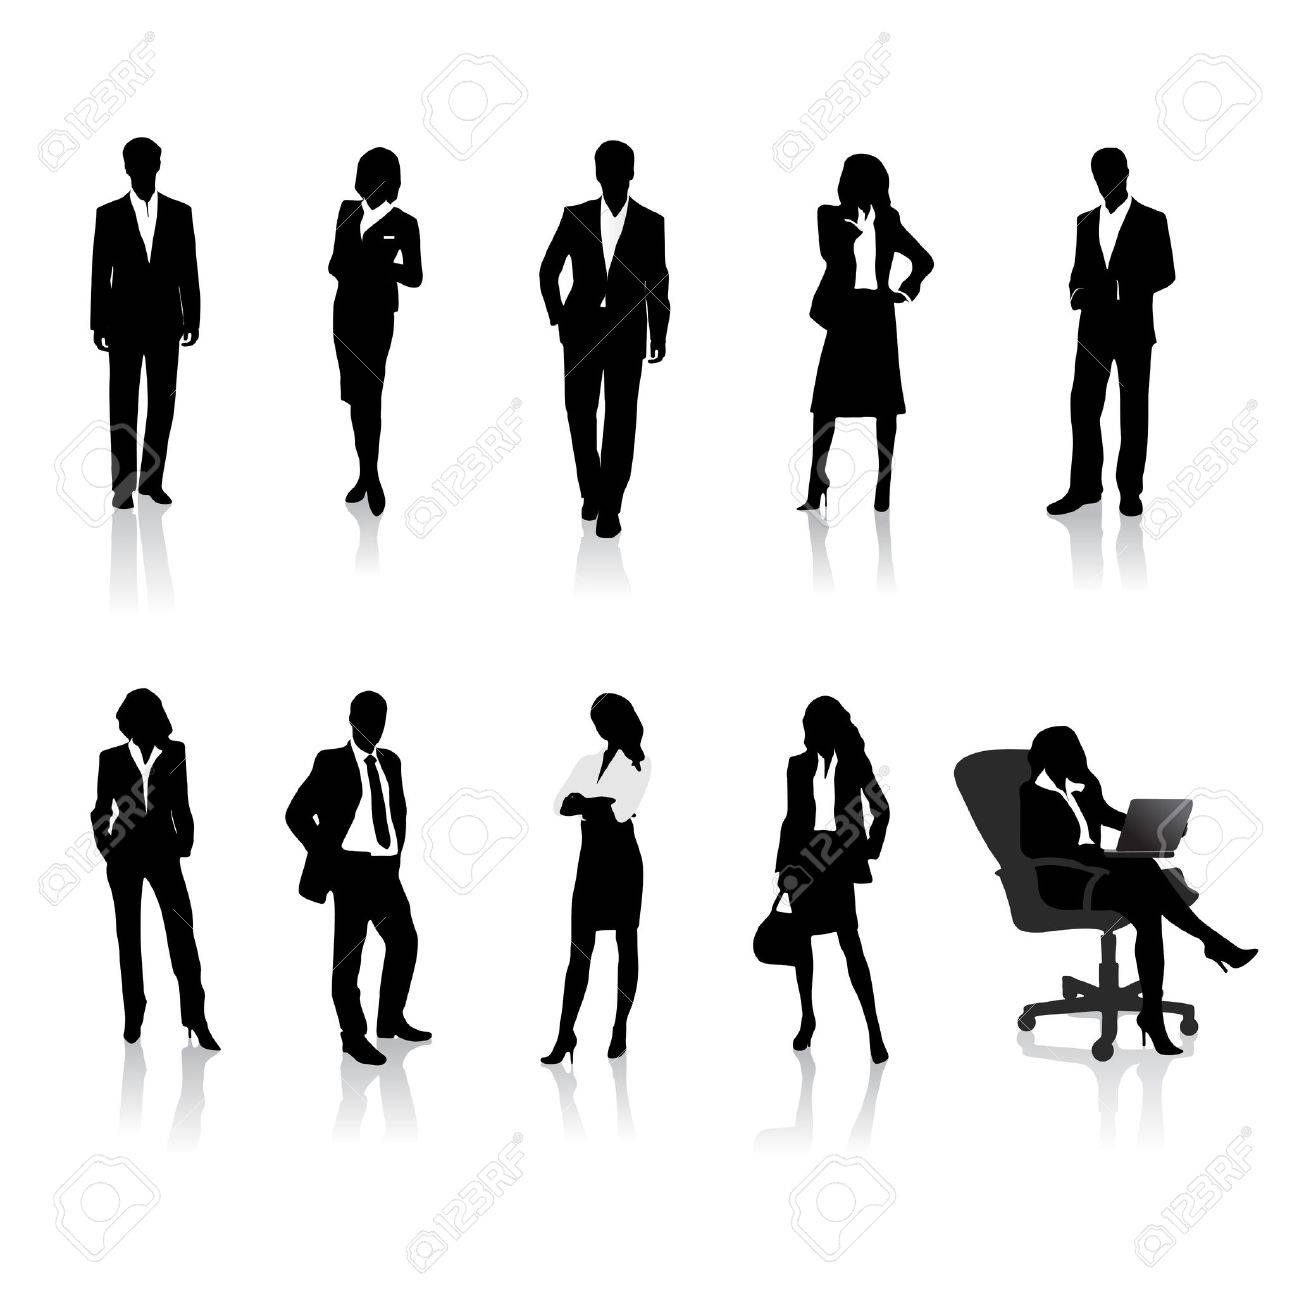 business people silhouettes - 35817390